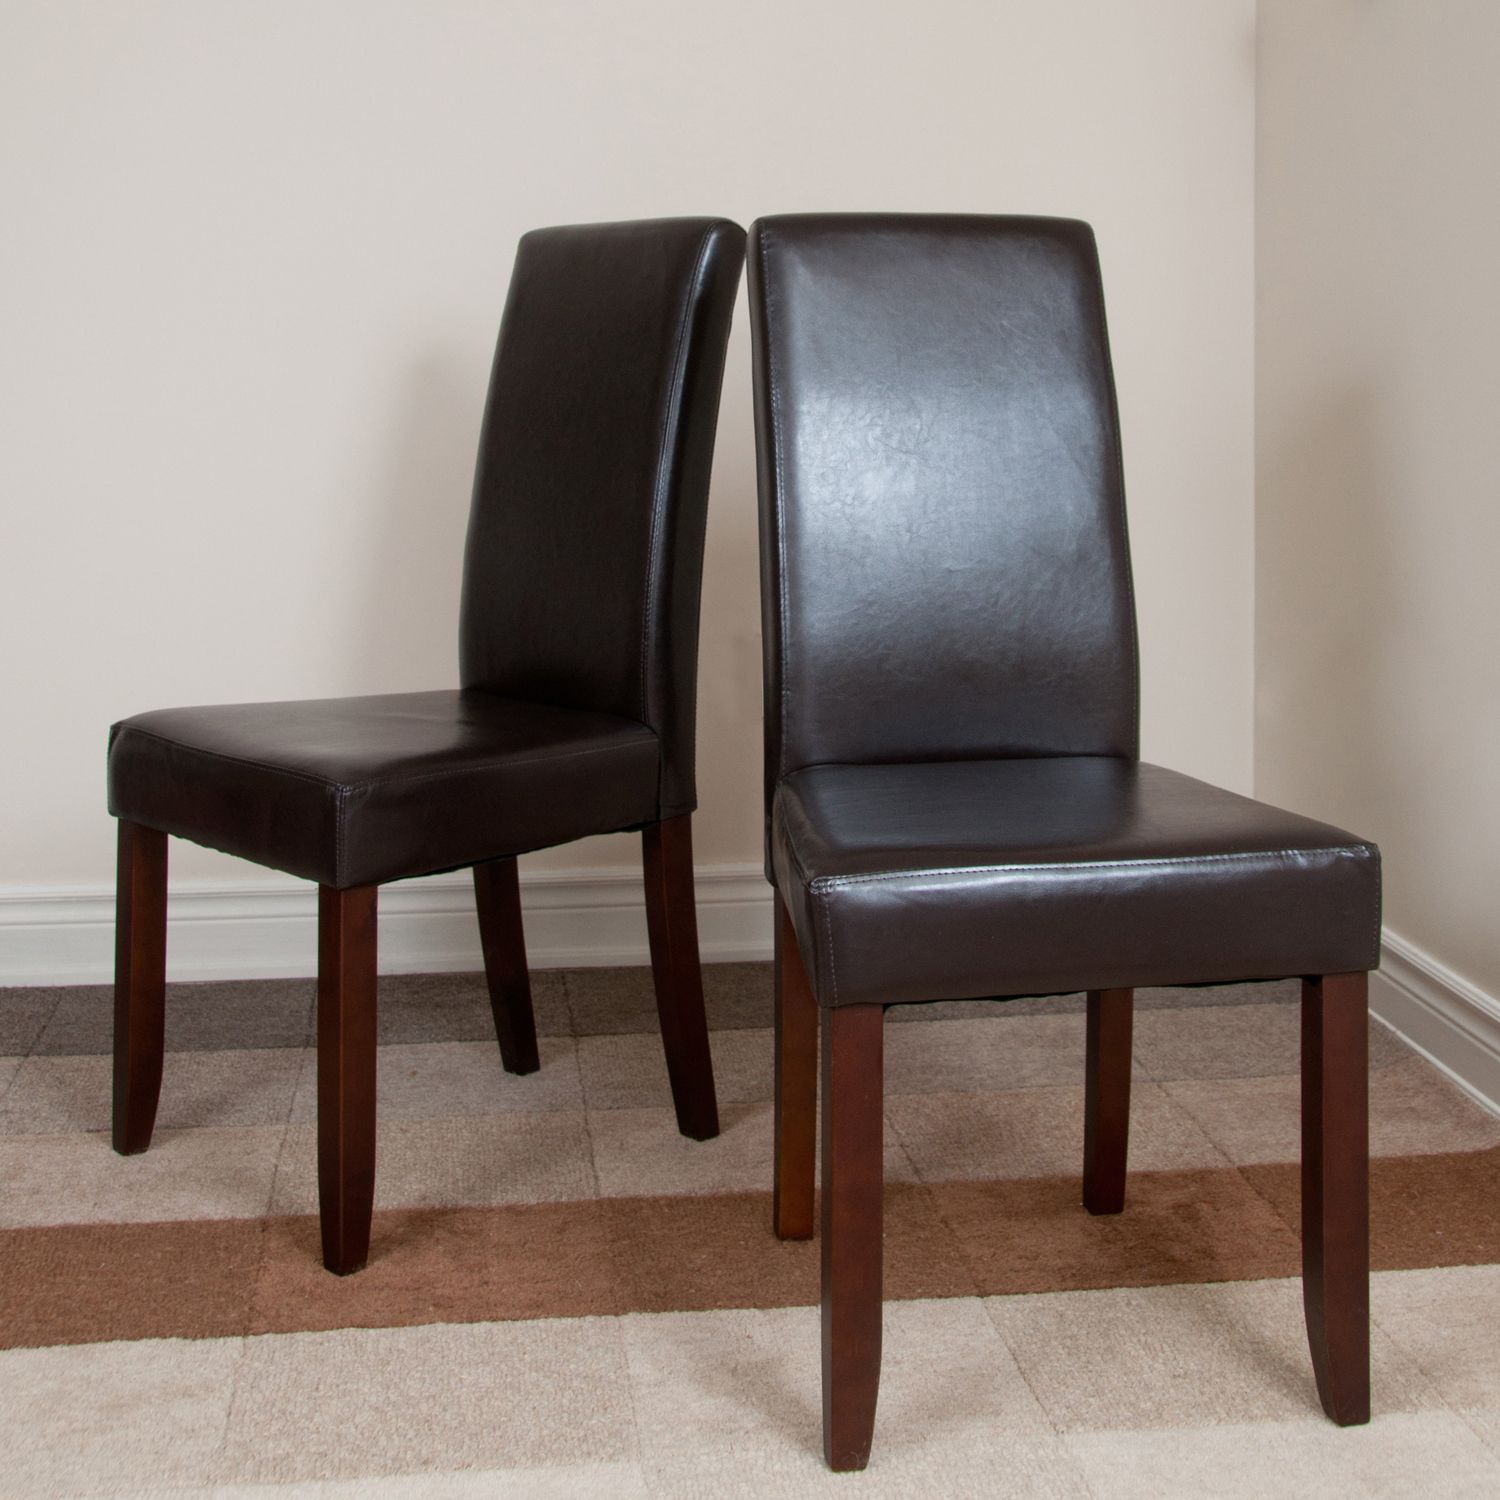 This Leather Parson Chair Set Provides An Elegant Highlight To Any Dining Room These Stylish